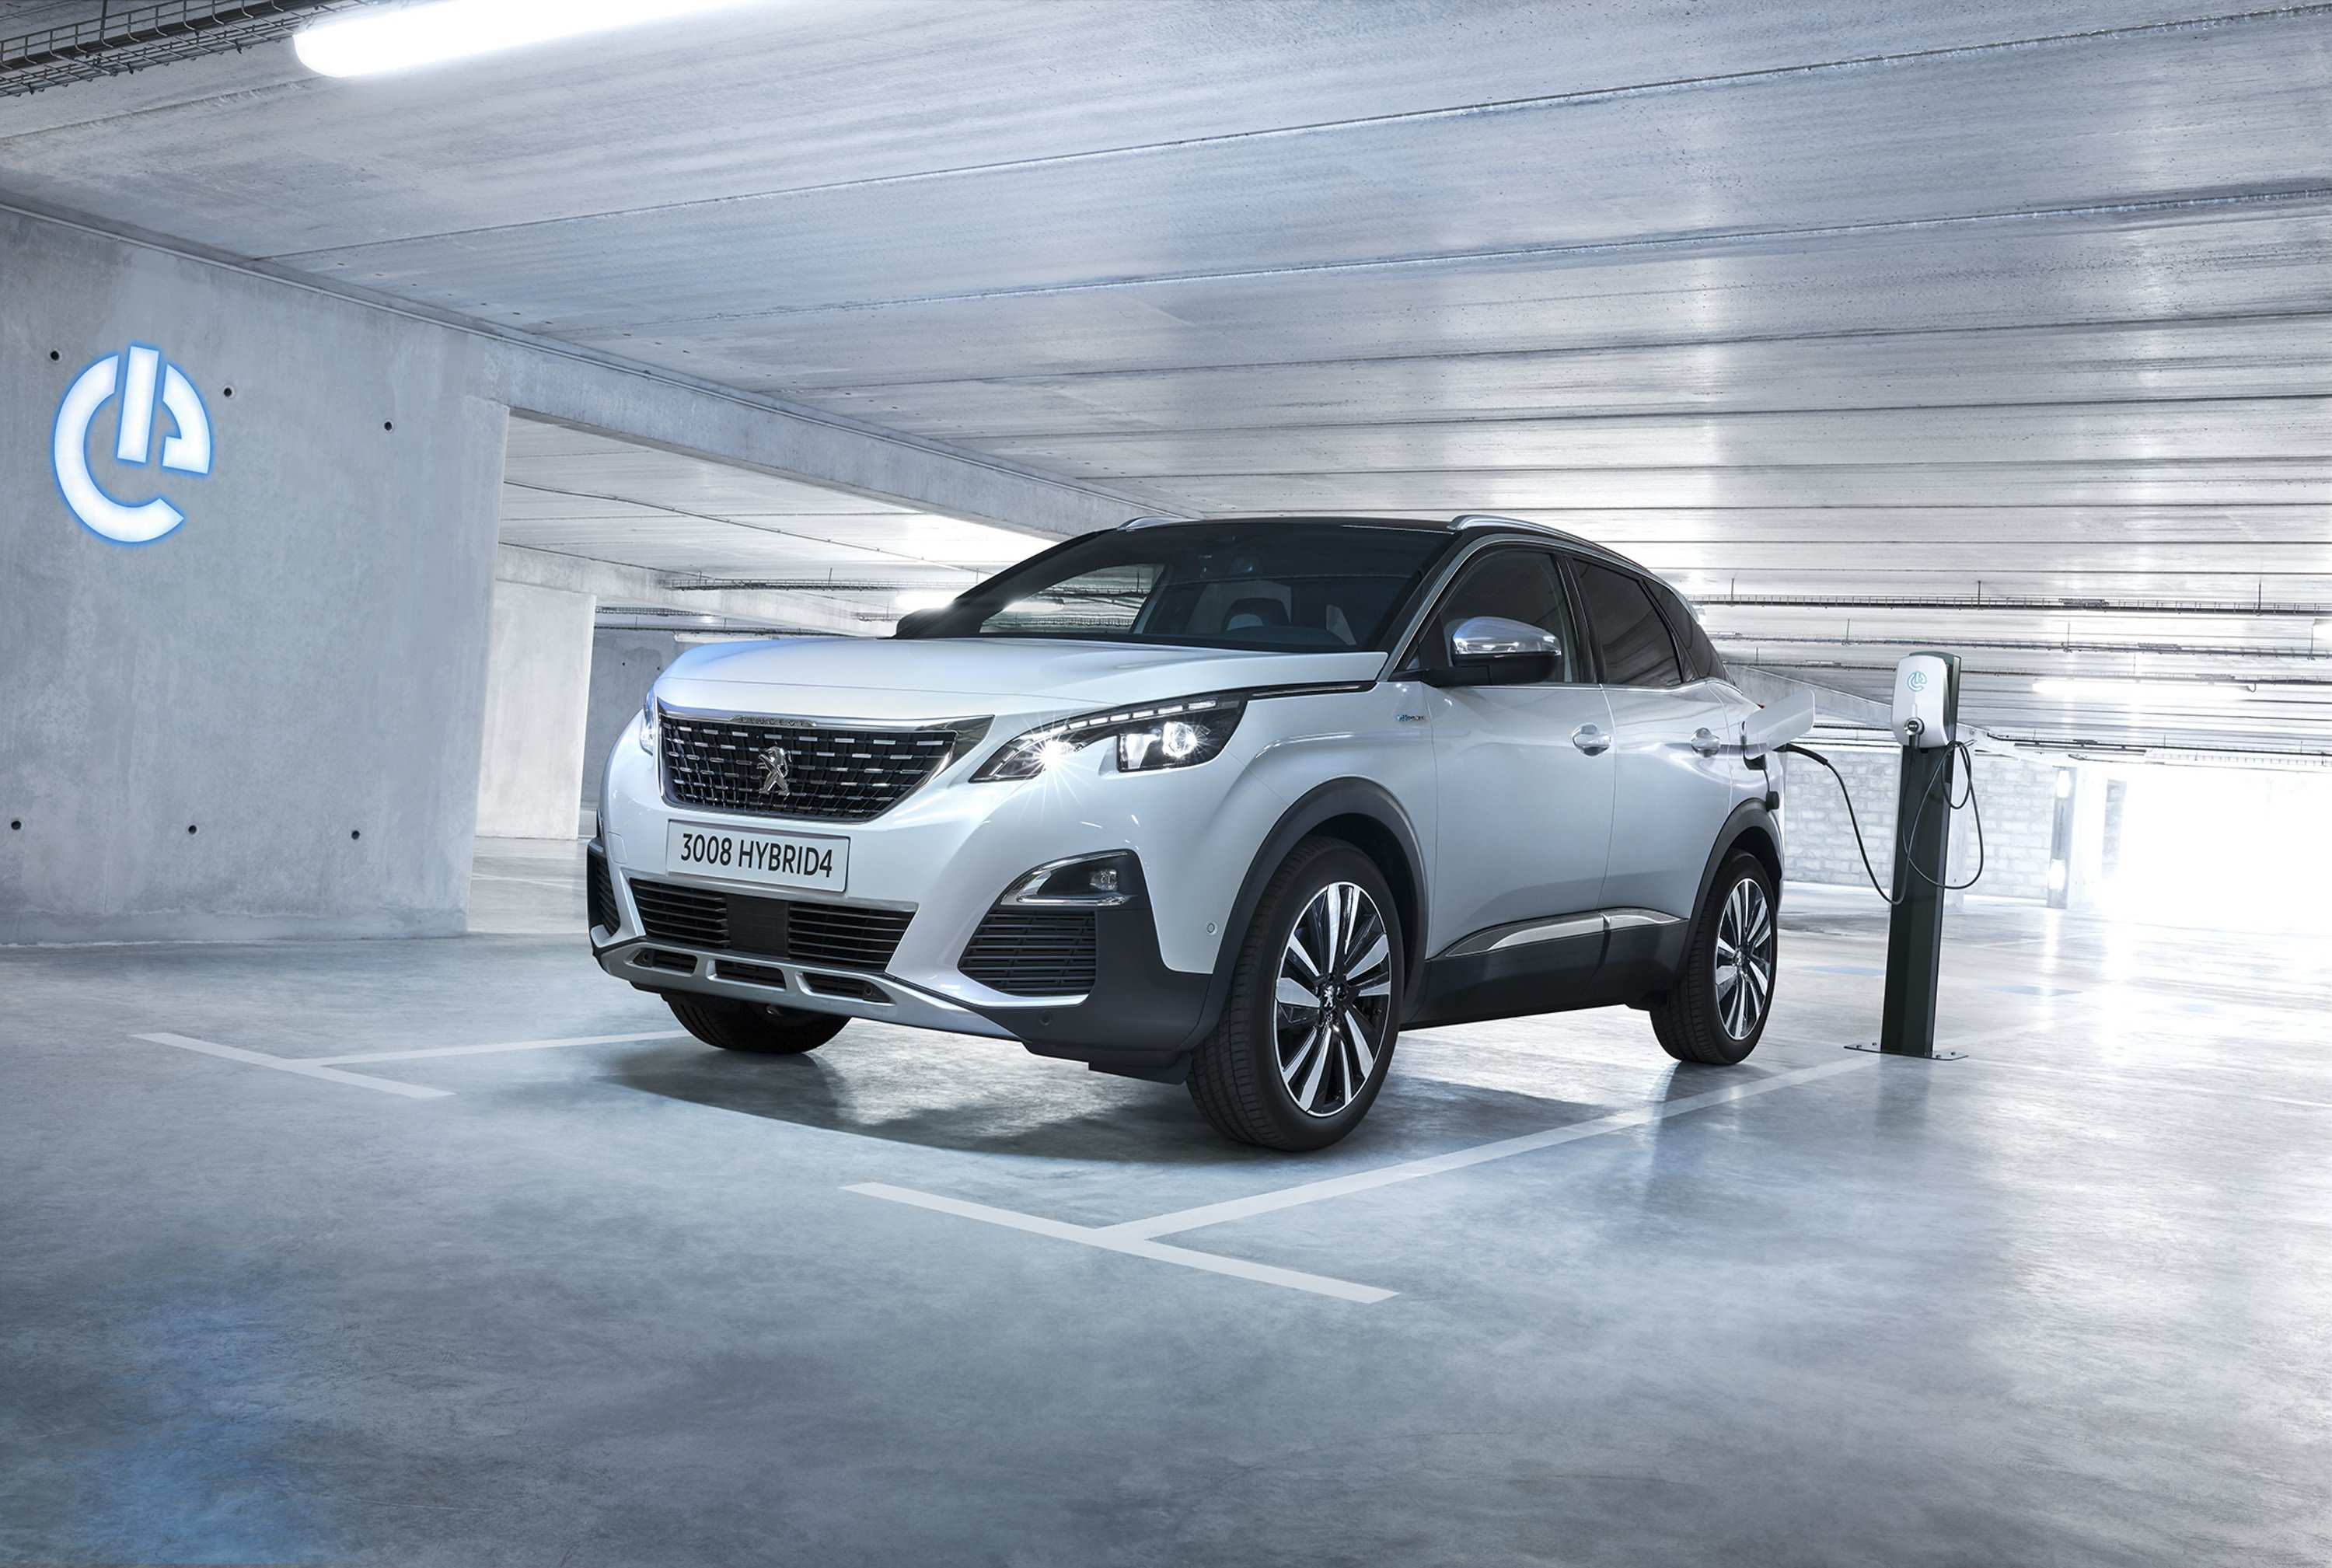 56 All New 2019 Peugeot 3008 Hybrid Release for 2019 Peugeot 3008 Hybrid